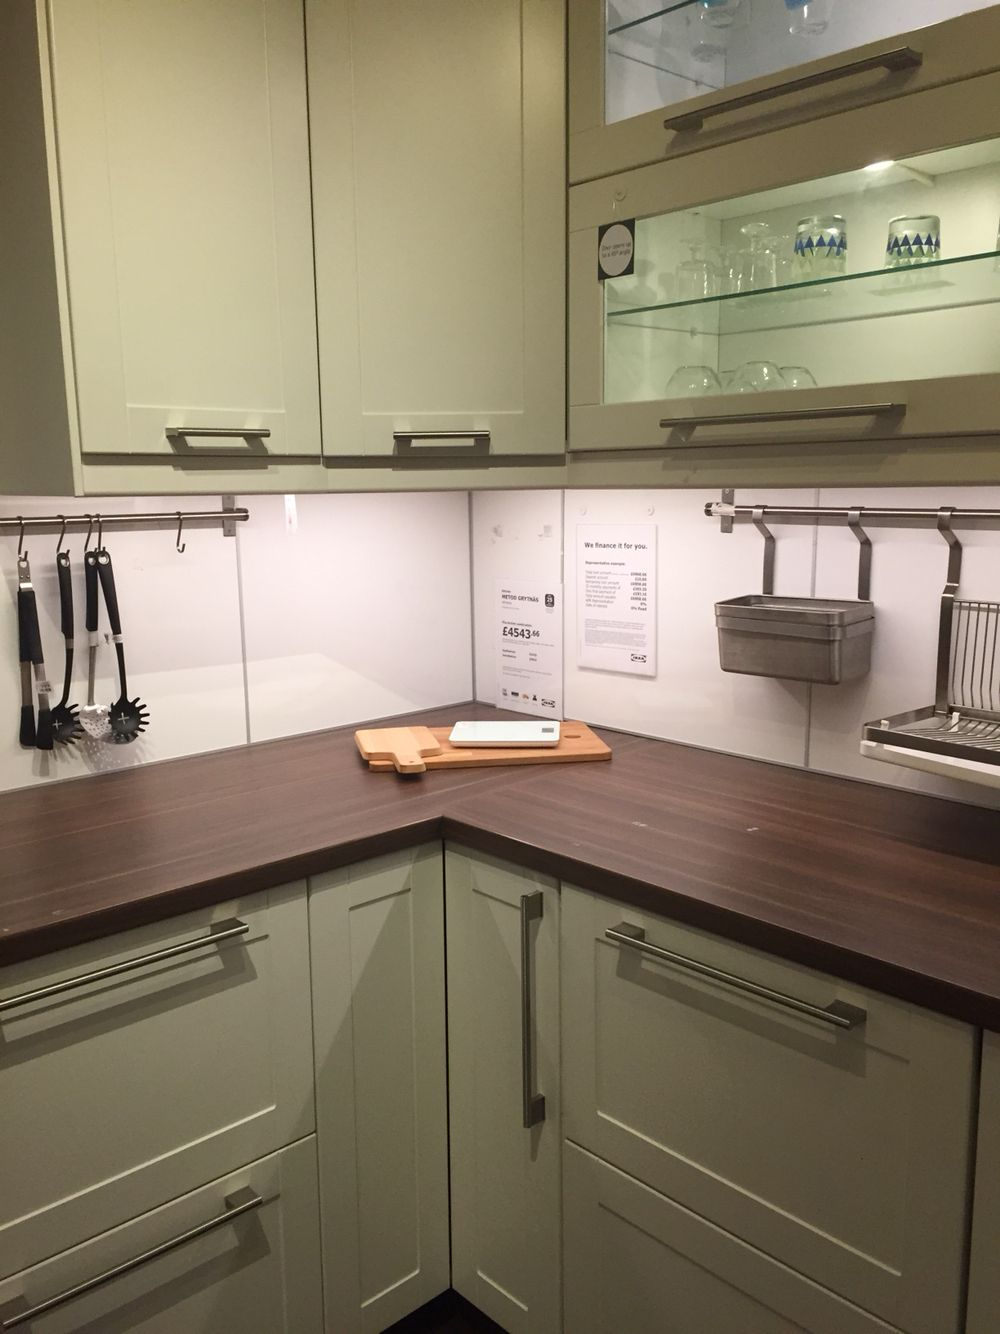 Built In Dishwasher, Washing Machine, Fridge Freezer And Ovens; Gadget  Cupboards And Drawers. Total Kitchen With Appliance Approx